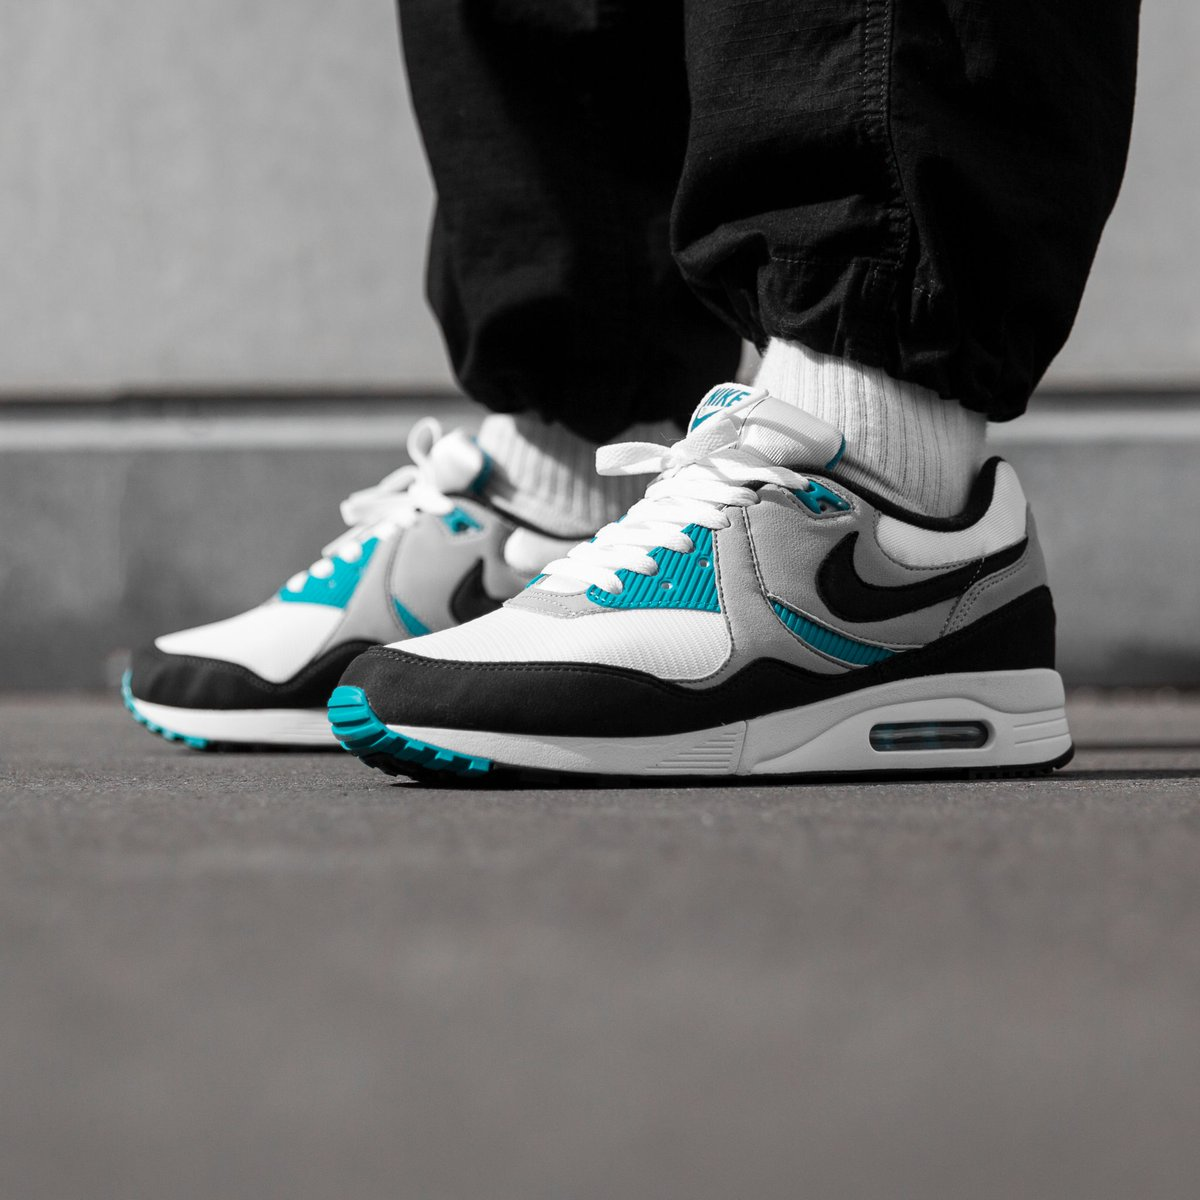 competitive price 6f968 069da a classic from 1989 is back 💫 Rediscover the Nike Air Max Light in